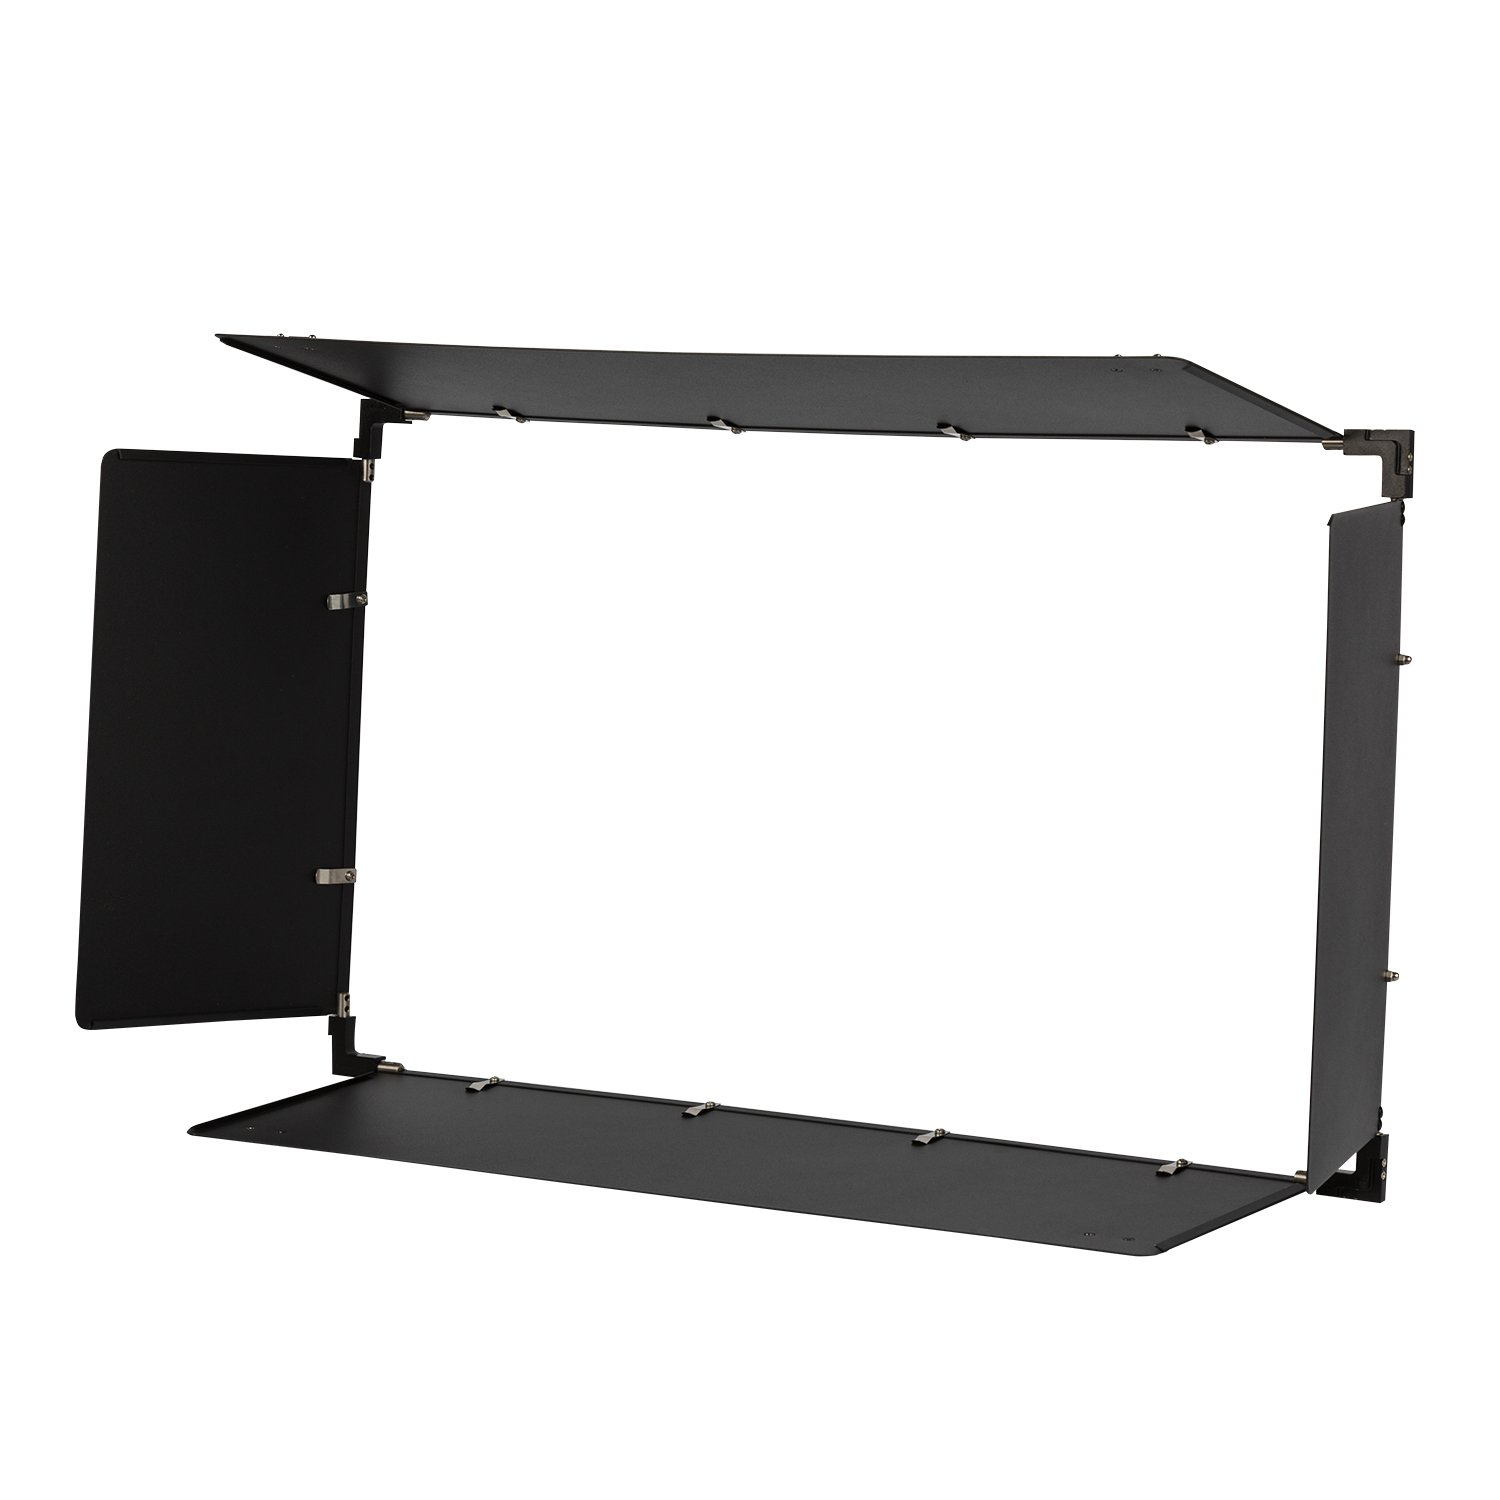 Ikan LBD20 Barn Doors for 1 x 2 Studio Soft Light, Black by Ikan